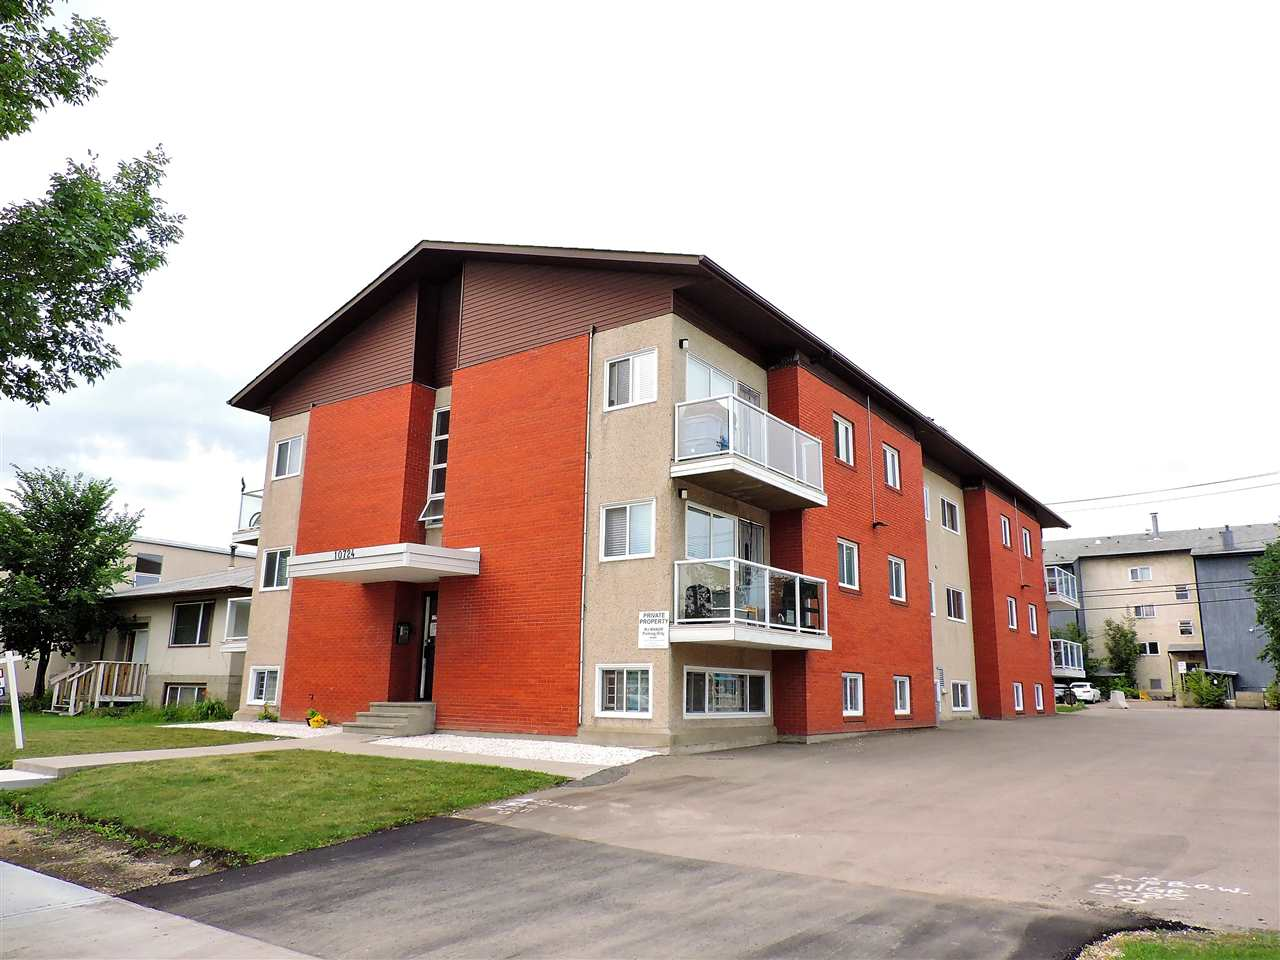 Main Photo: 3 10724 115 Street in Edmonton: Zone 08 Condo for sale : MLS® # E4077157